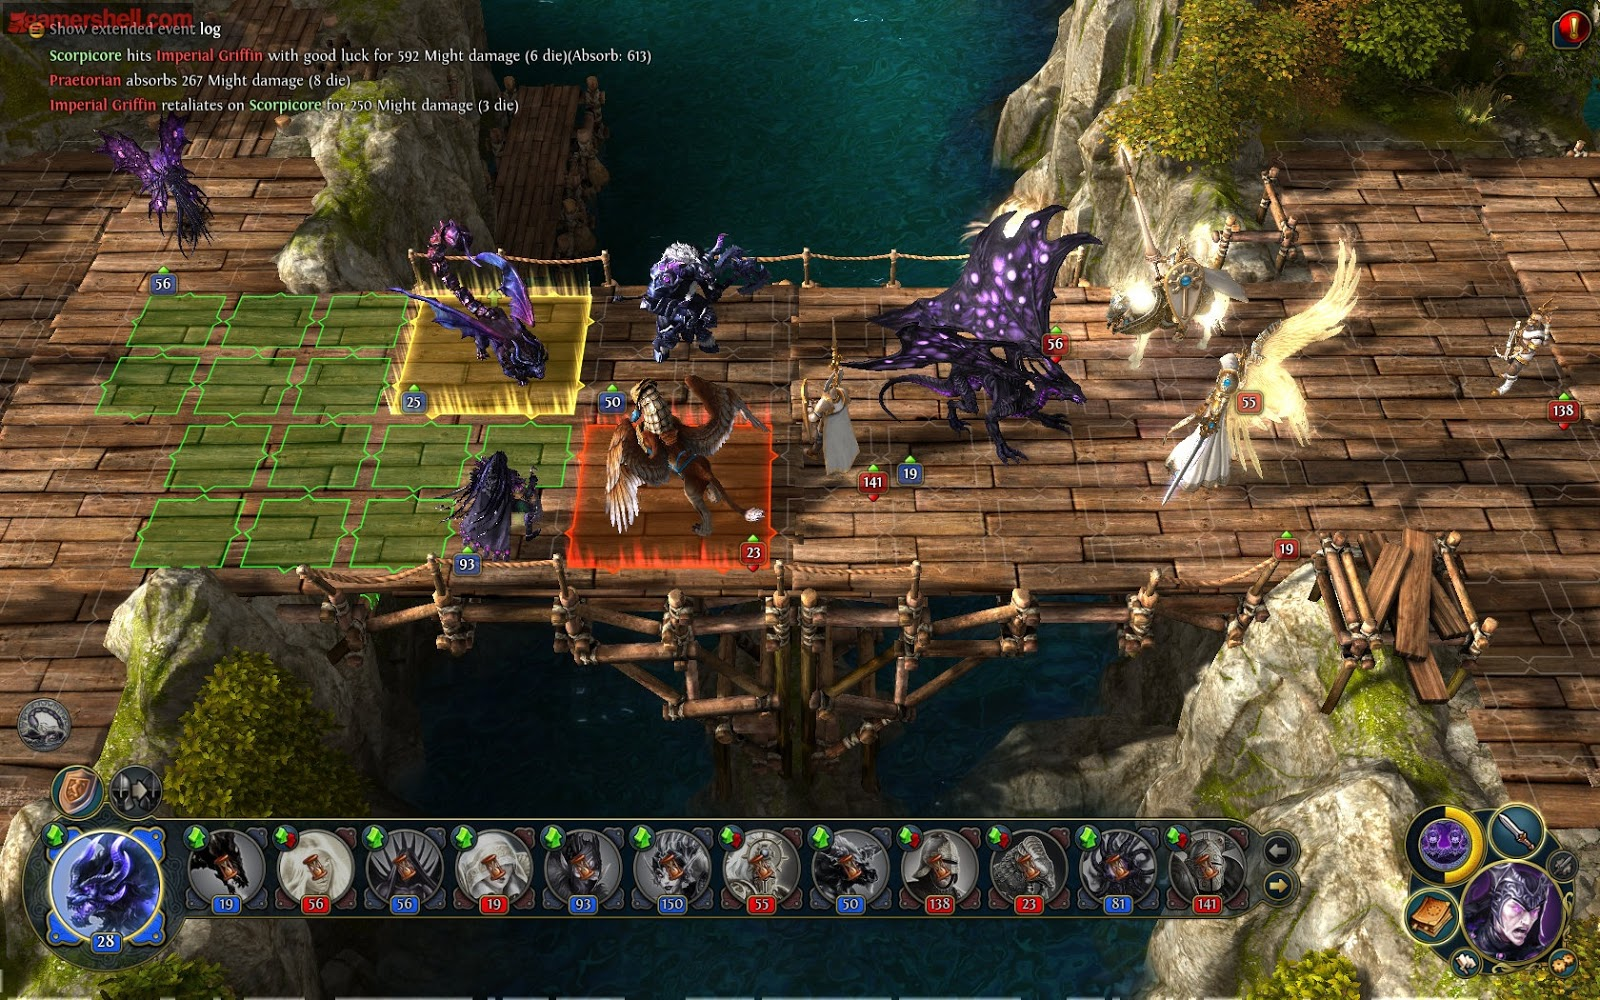 heroes of might and magic 6 download